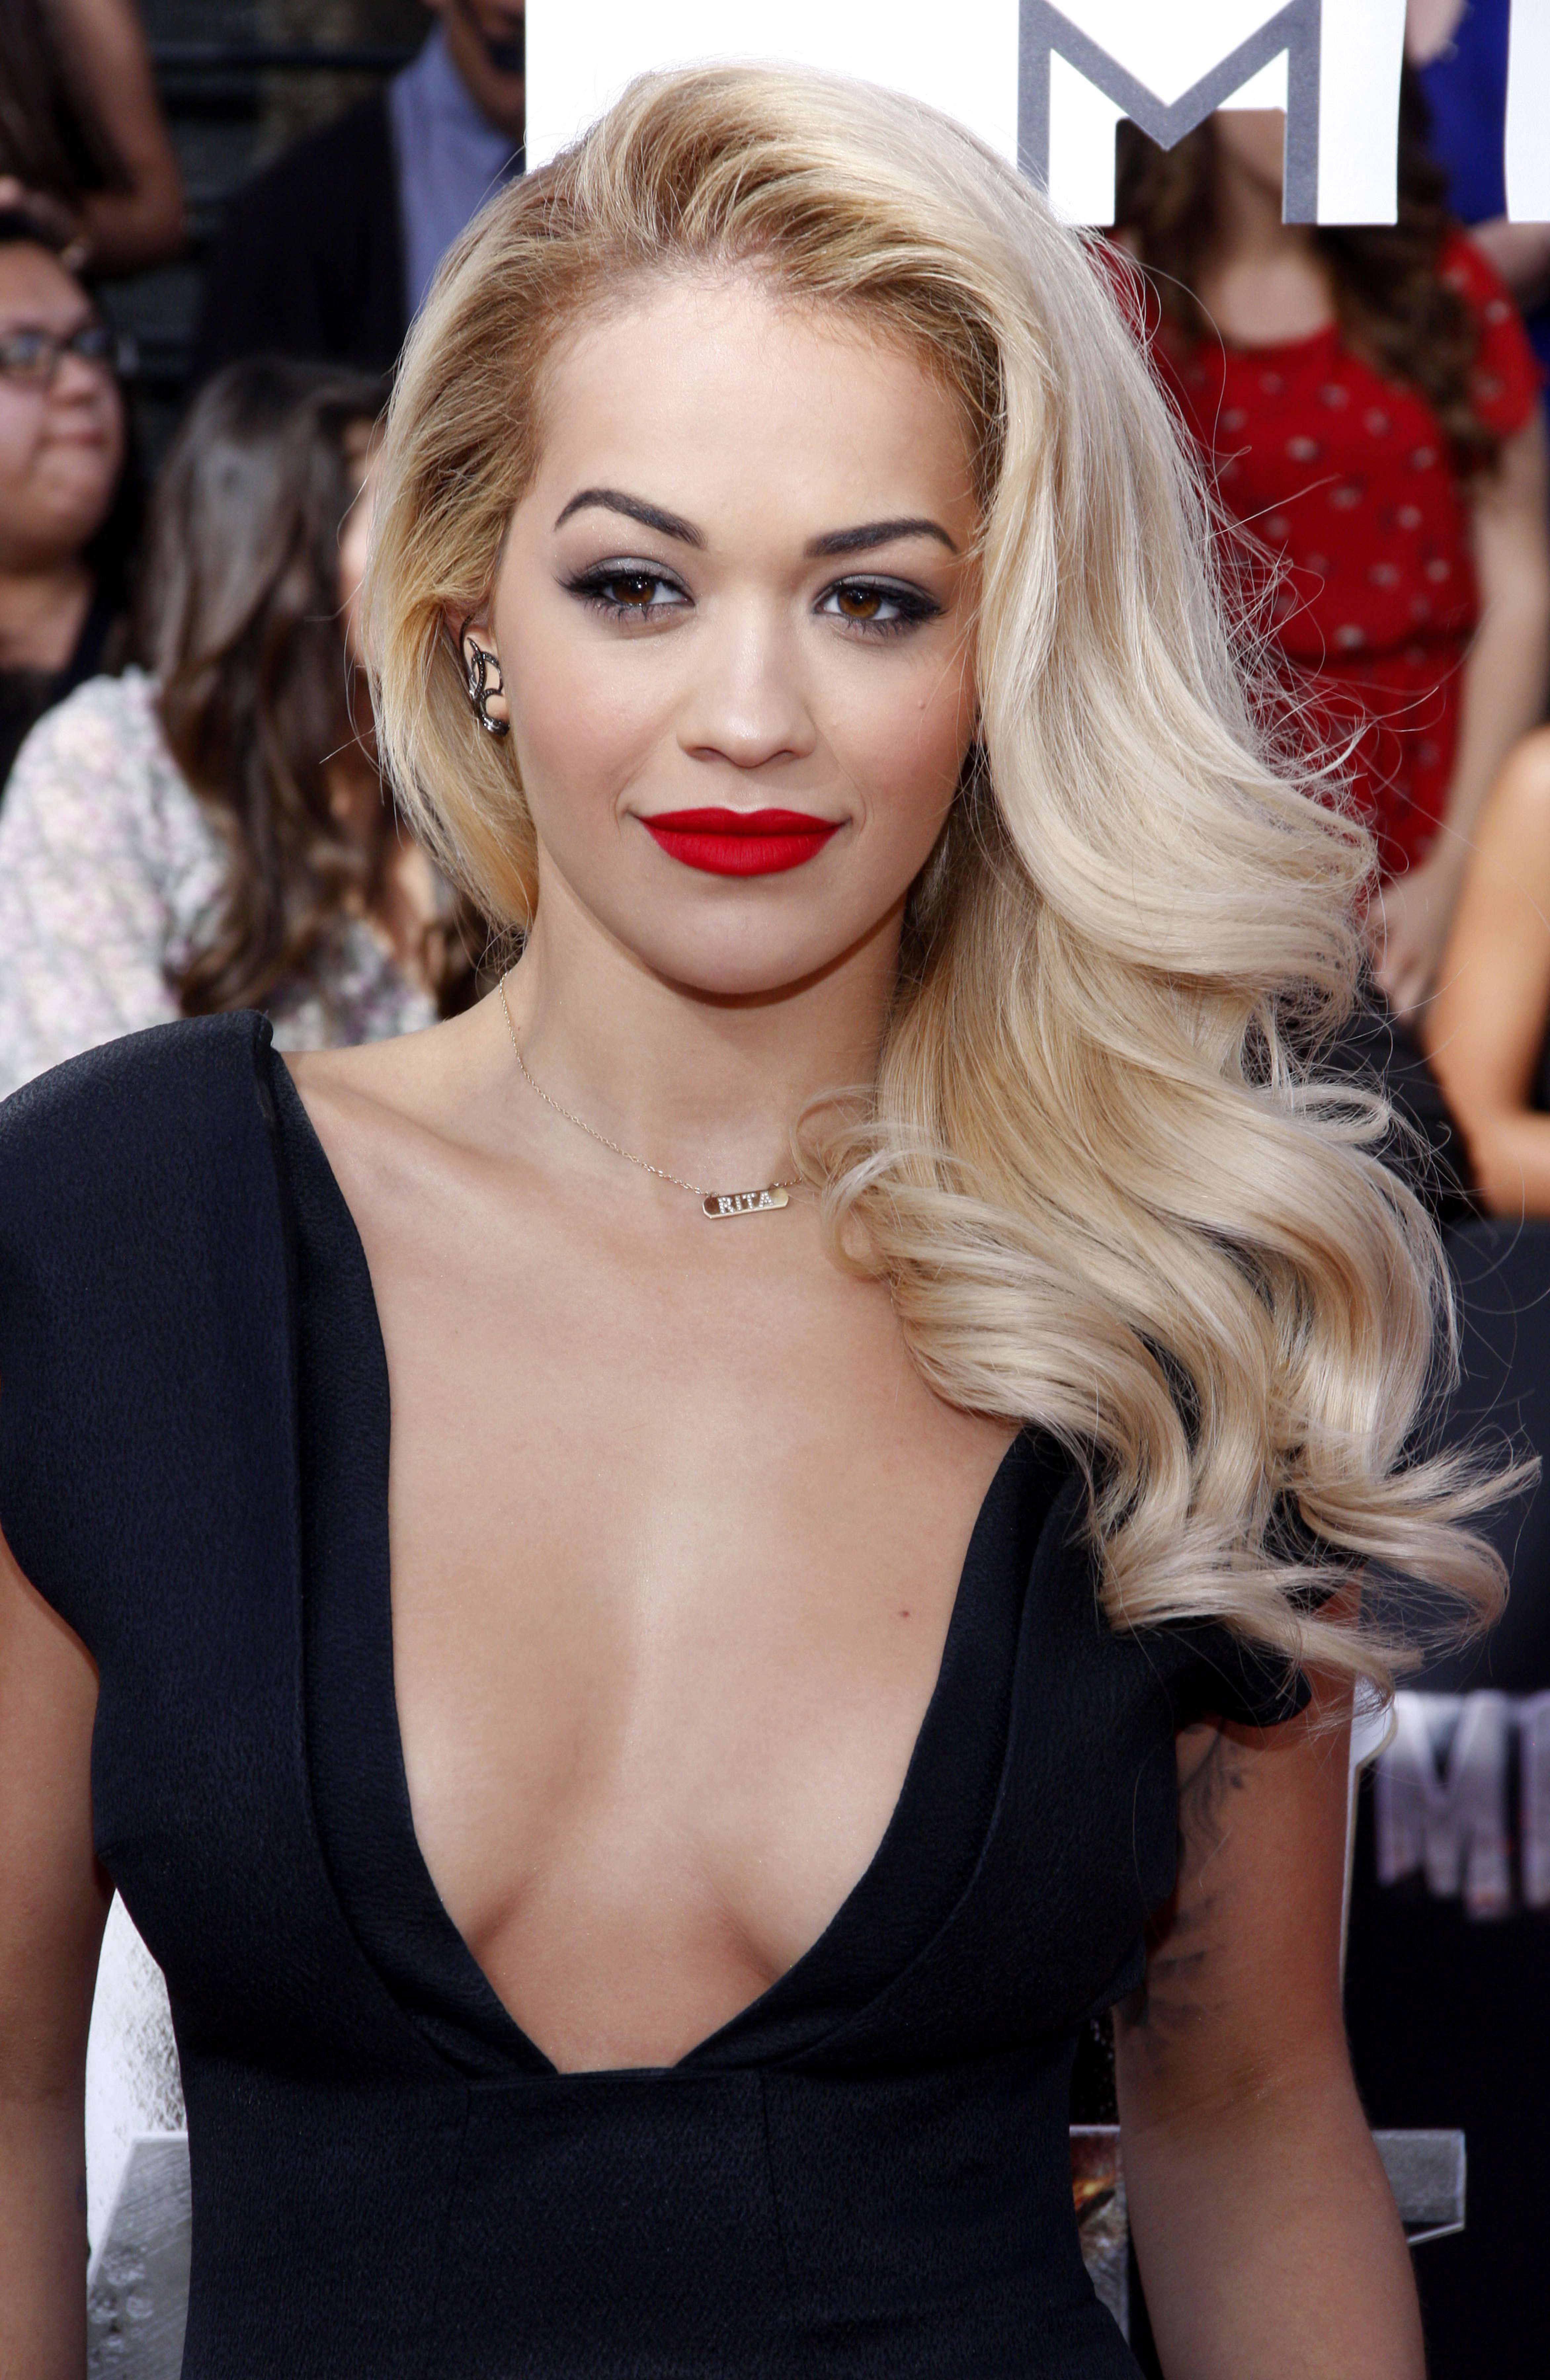 Rita Ora pictured at the 2014 MTV Movie Awards, Los Angeles. | Photo: Shutterstock